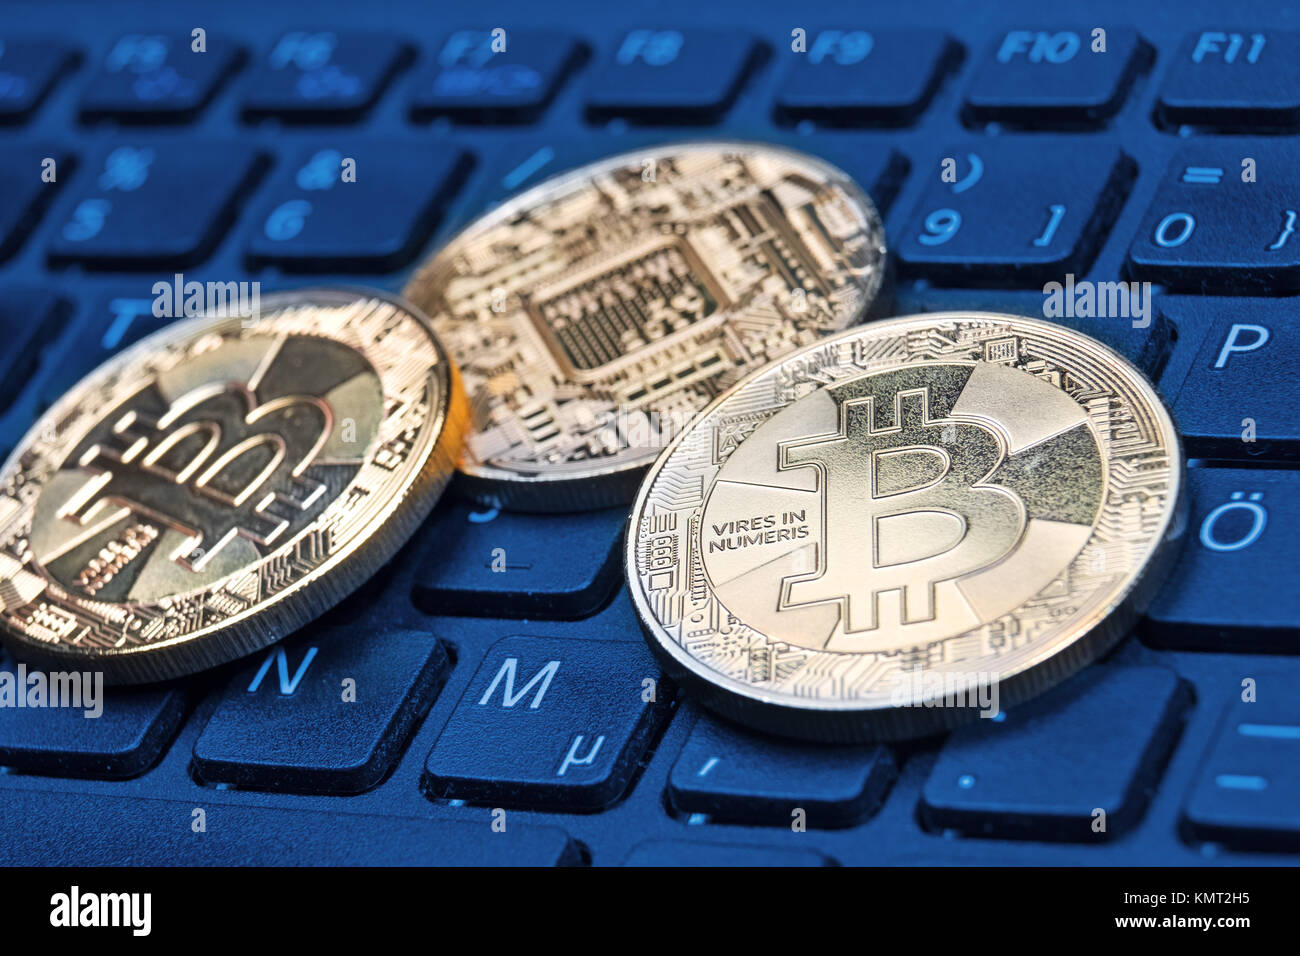 Gold-colored Bitcoin cryptocurrency coin on a computer keyboard Stock Photo